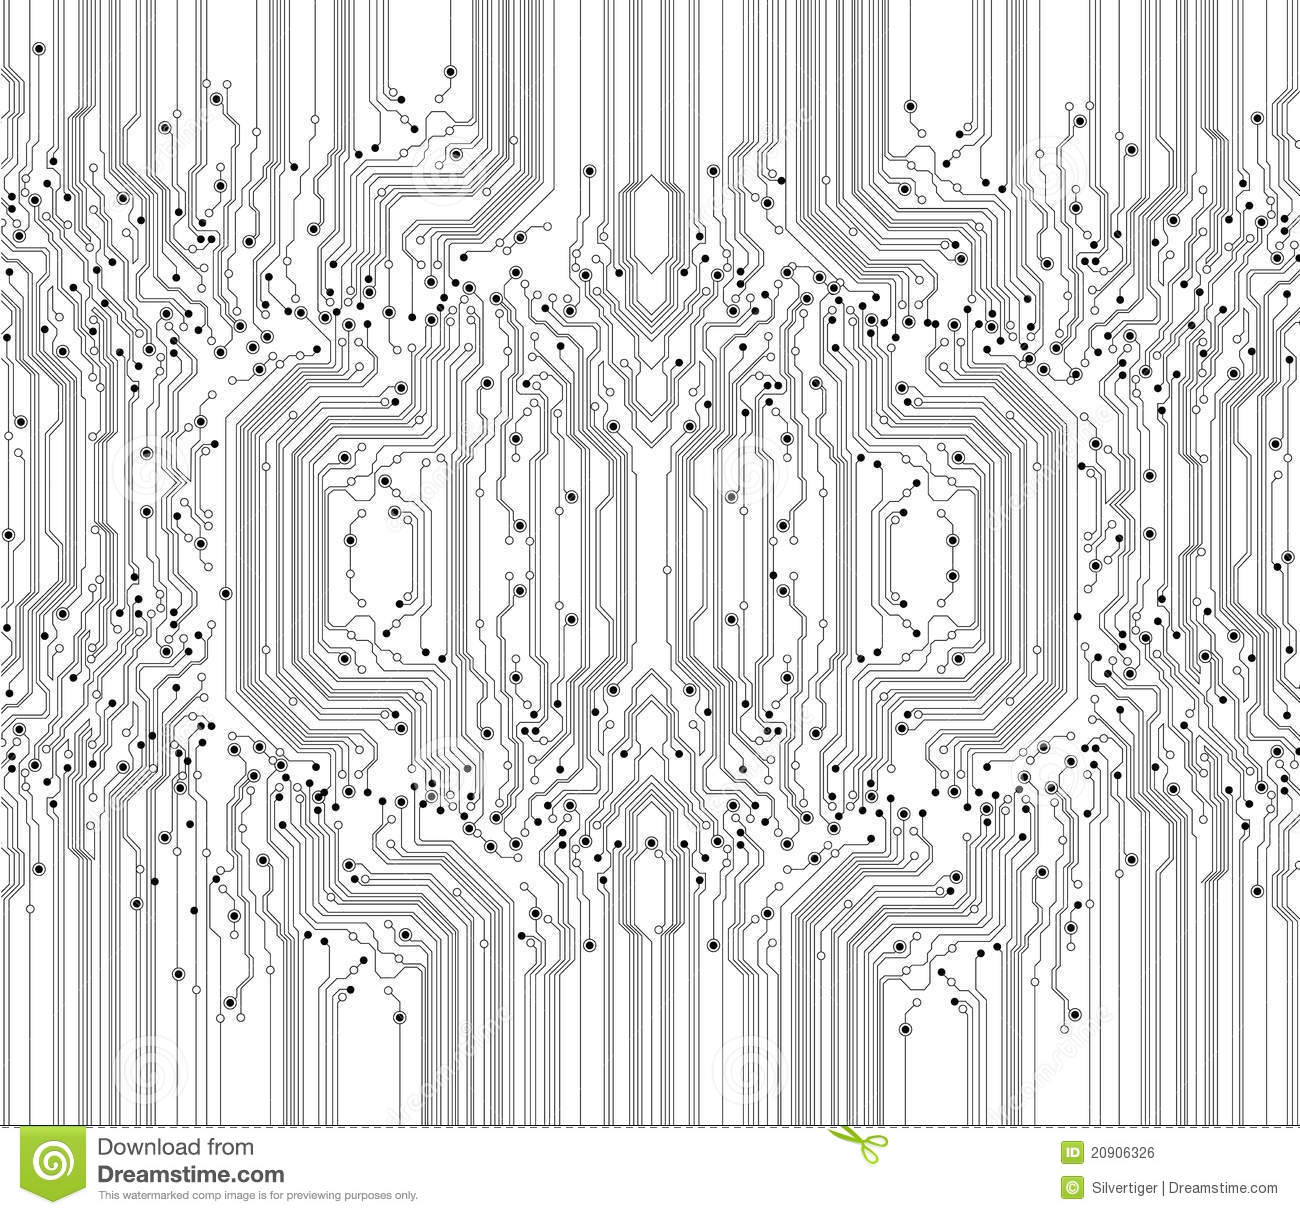 Abstract Circuit Board Texture Background Stock Vector ...